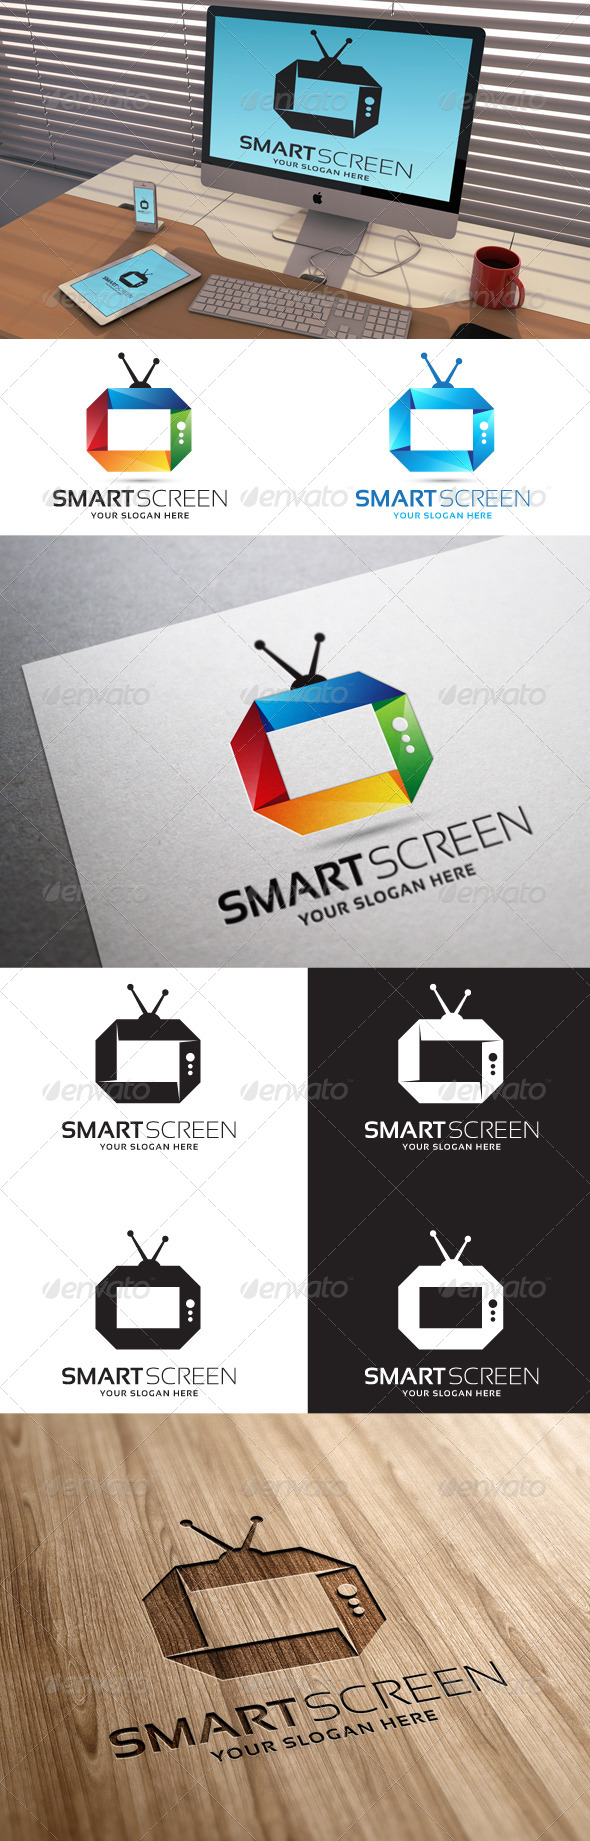 GraphicRiver Smart Screen 7113143